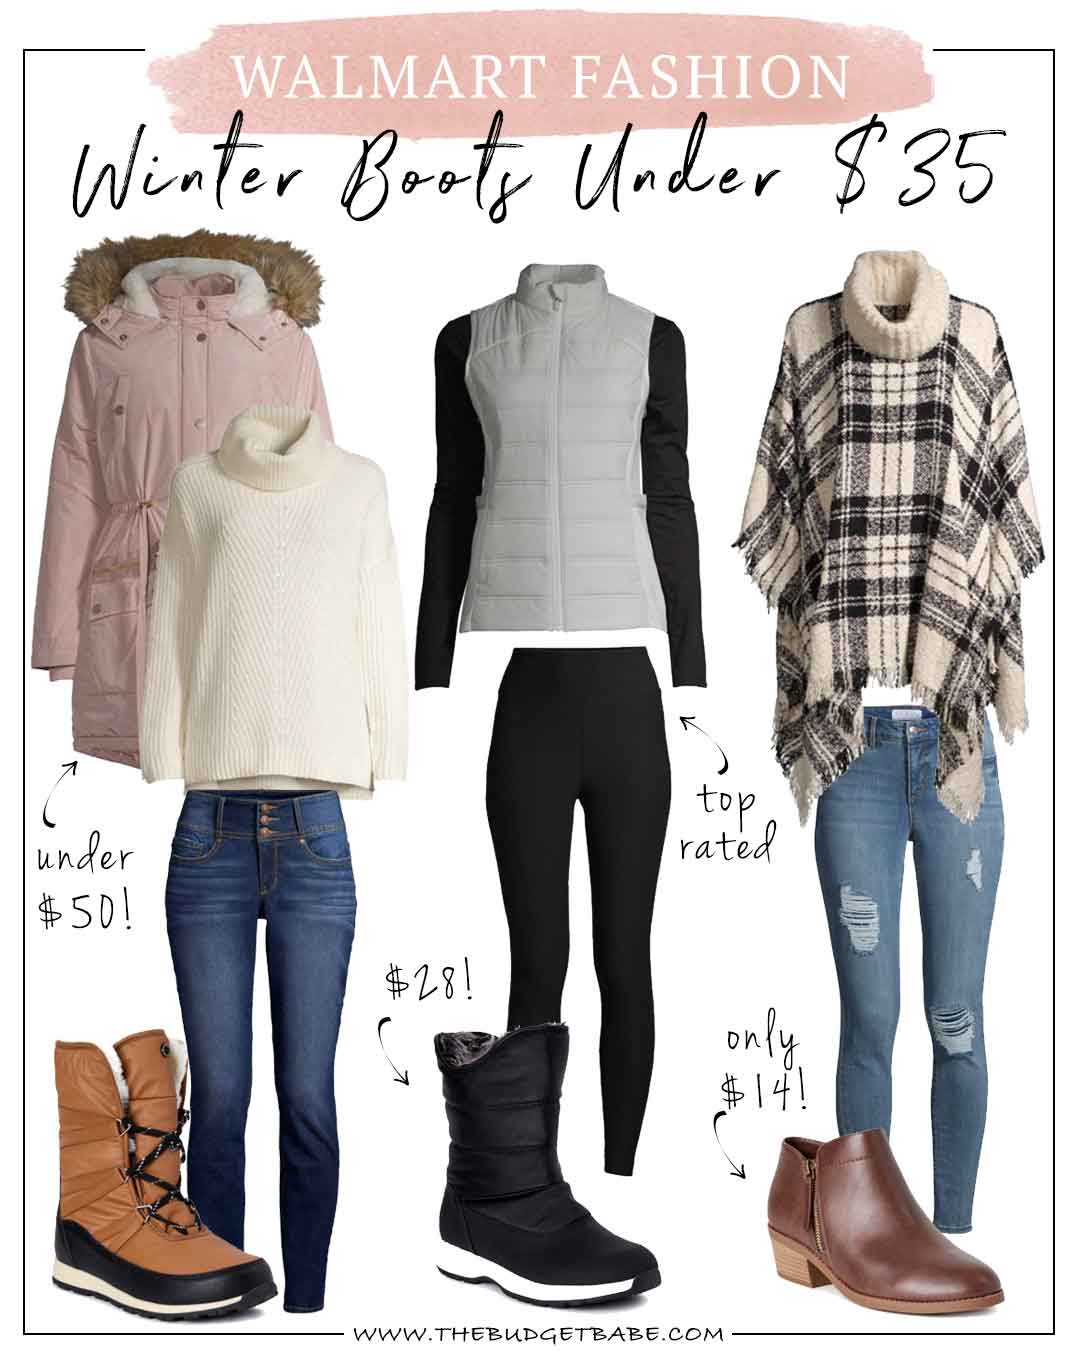 Winter Boots at Walmart From $15 to $35!